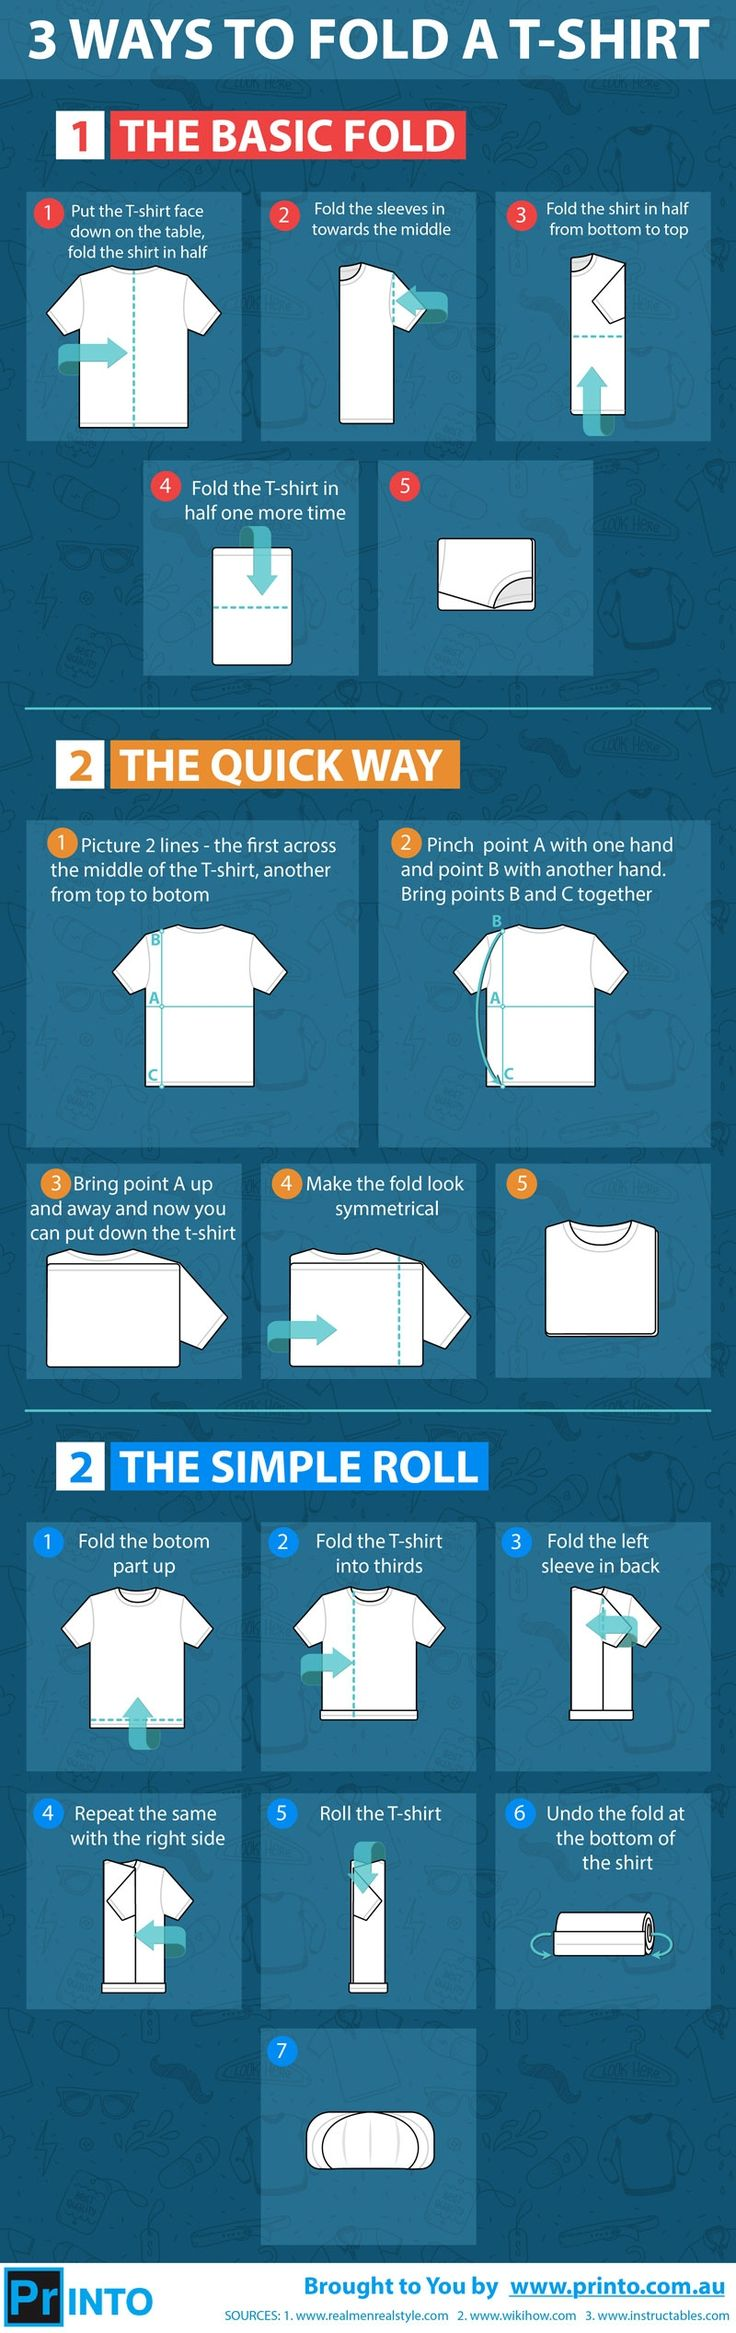 There are multiple ways to fold your favorite funny T-shirt. The right folding m...